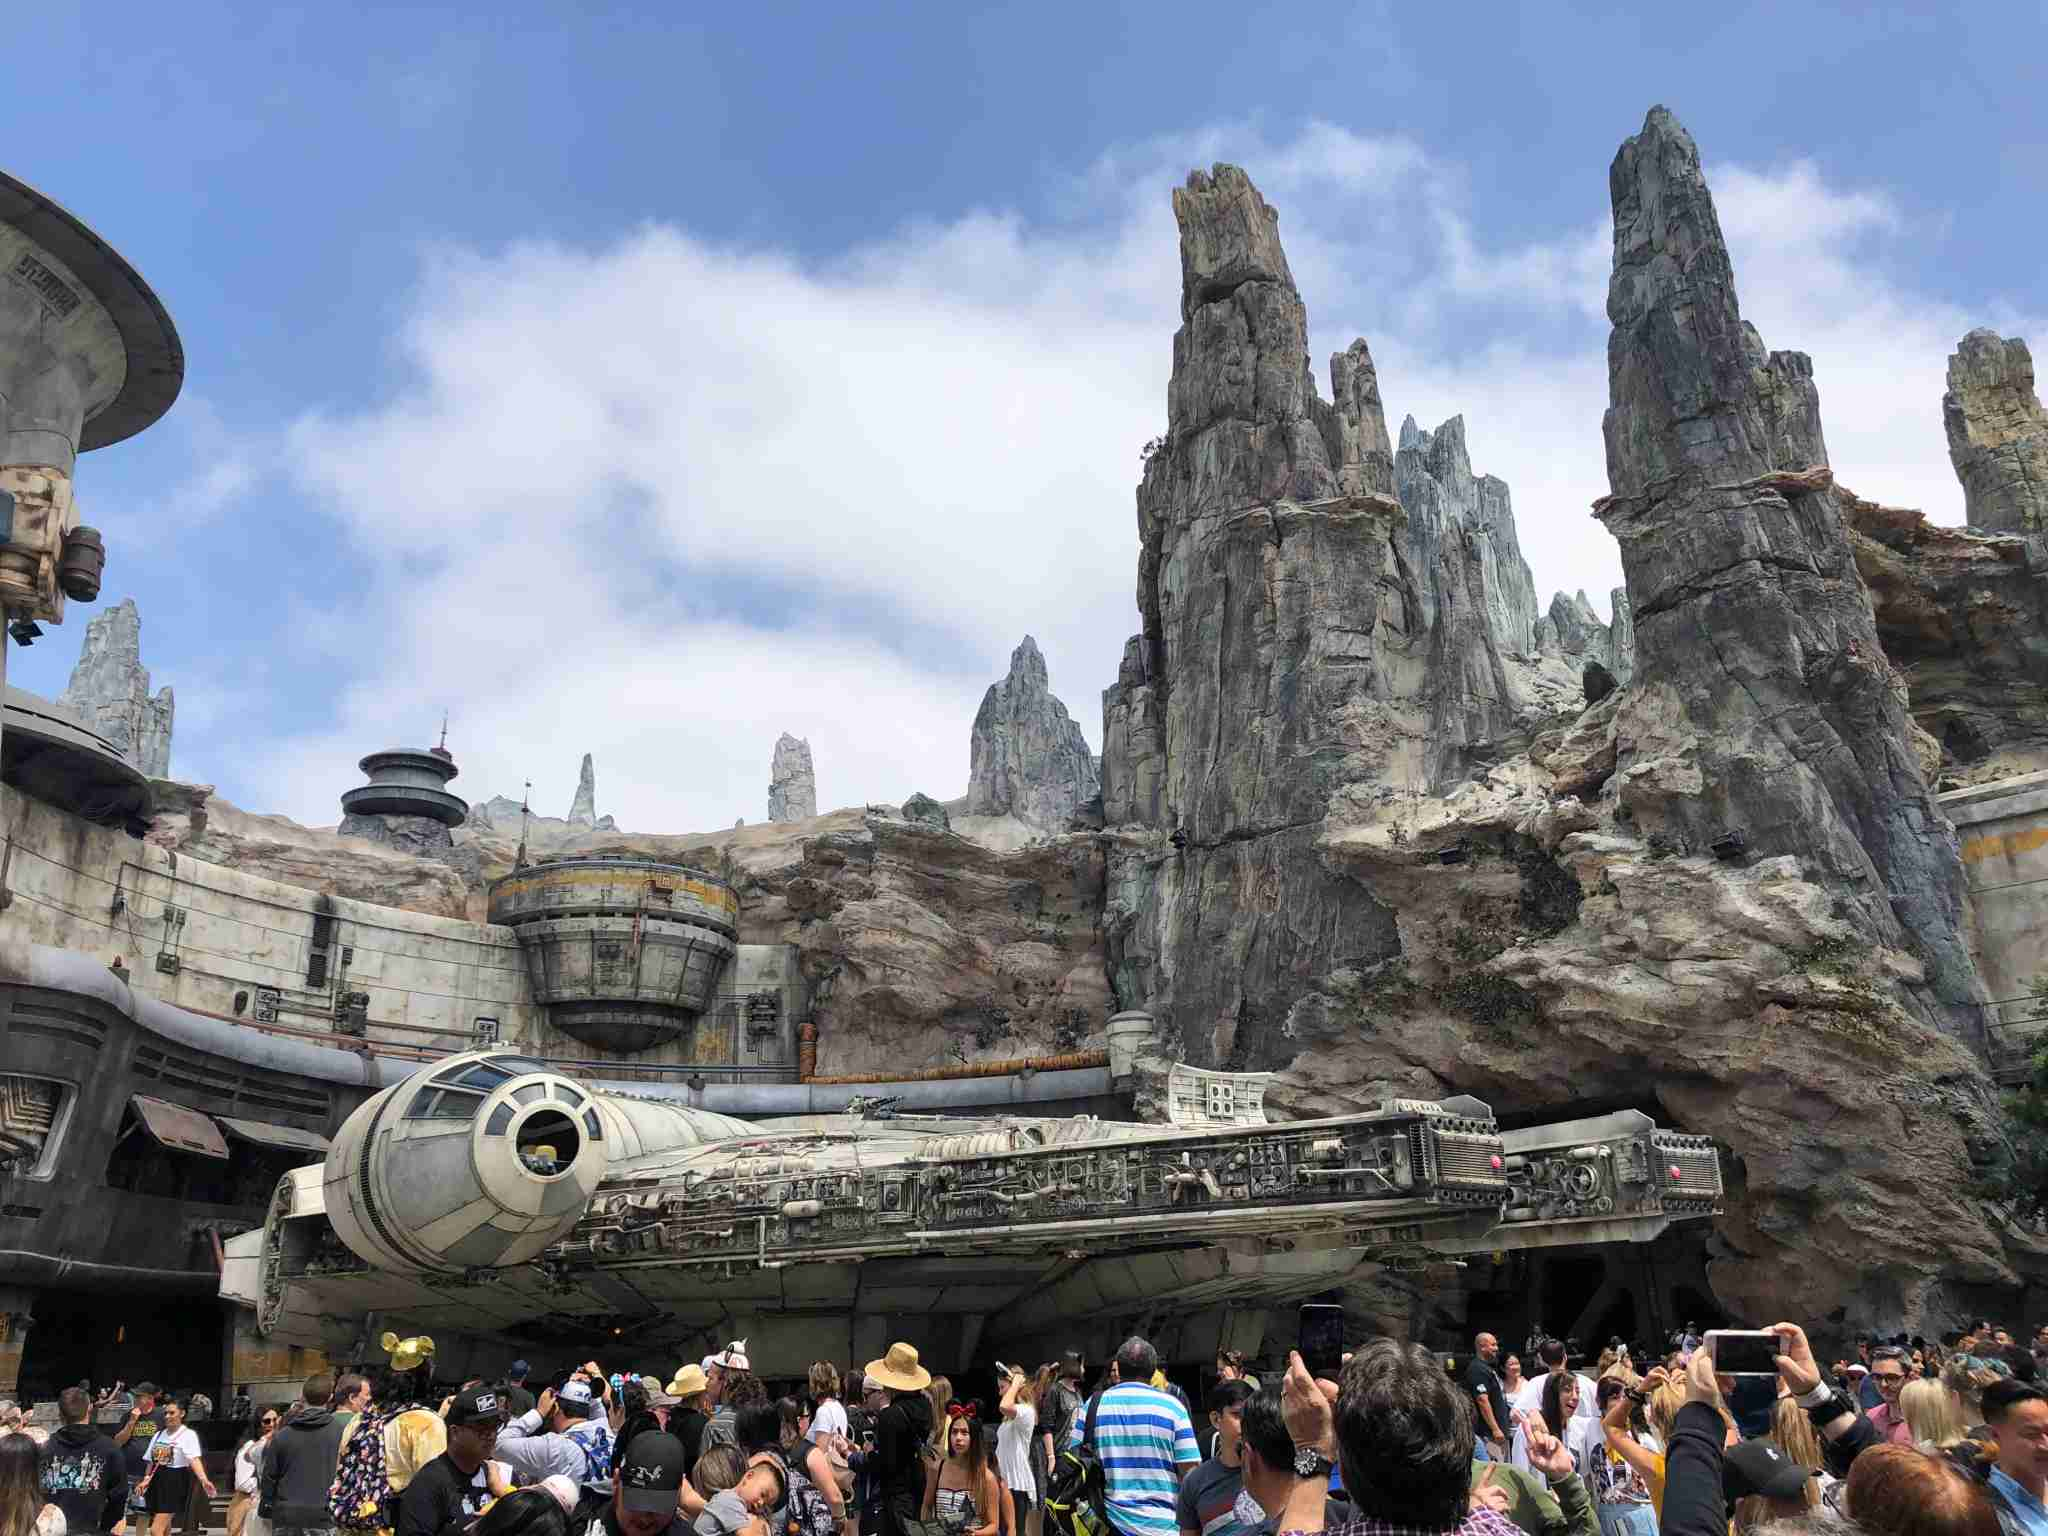 Crowds queue around the Millennium Falcon.(Image by Leslie Harvey.)